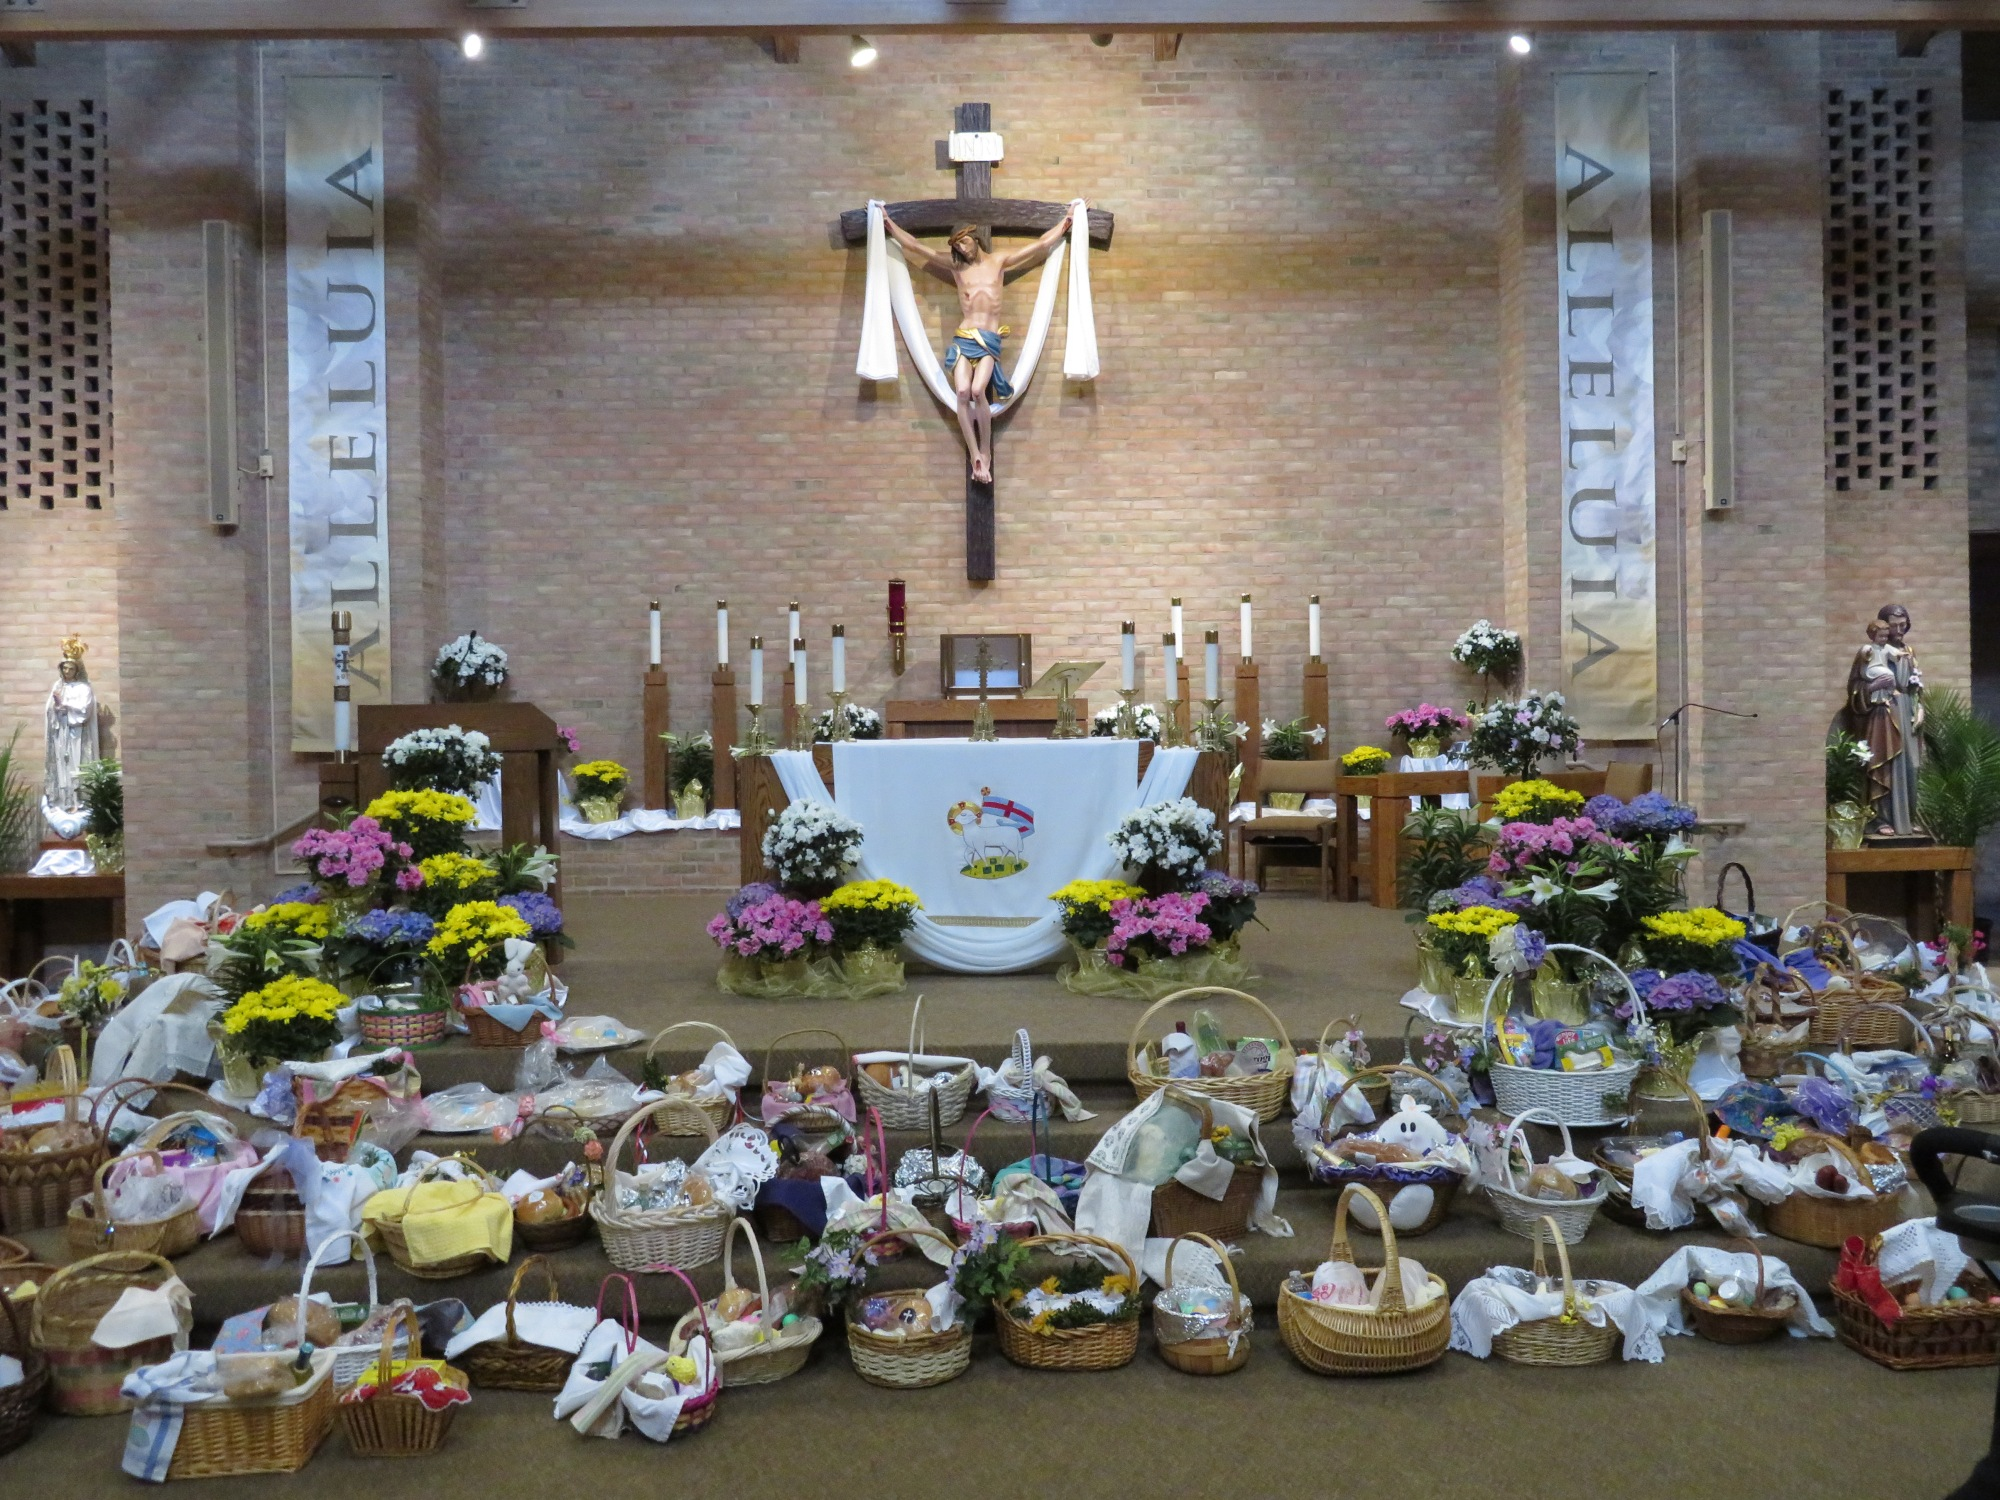 Saint Mary Mokena Easter Basket Blessing